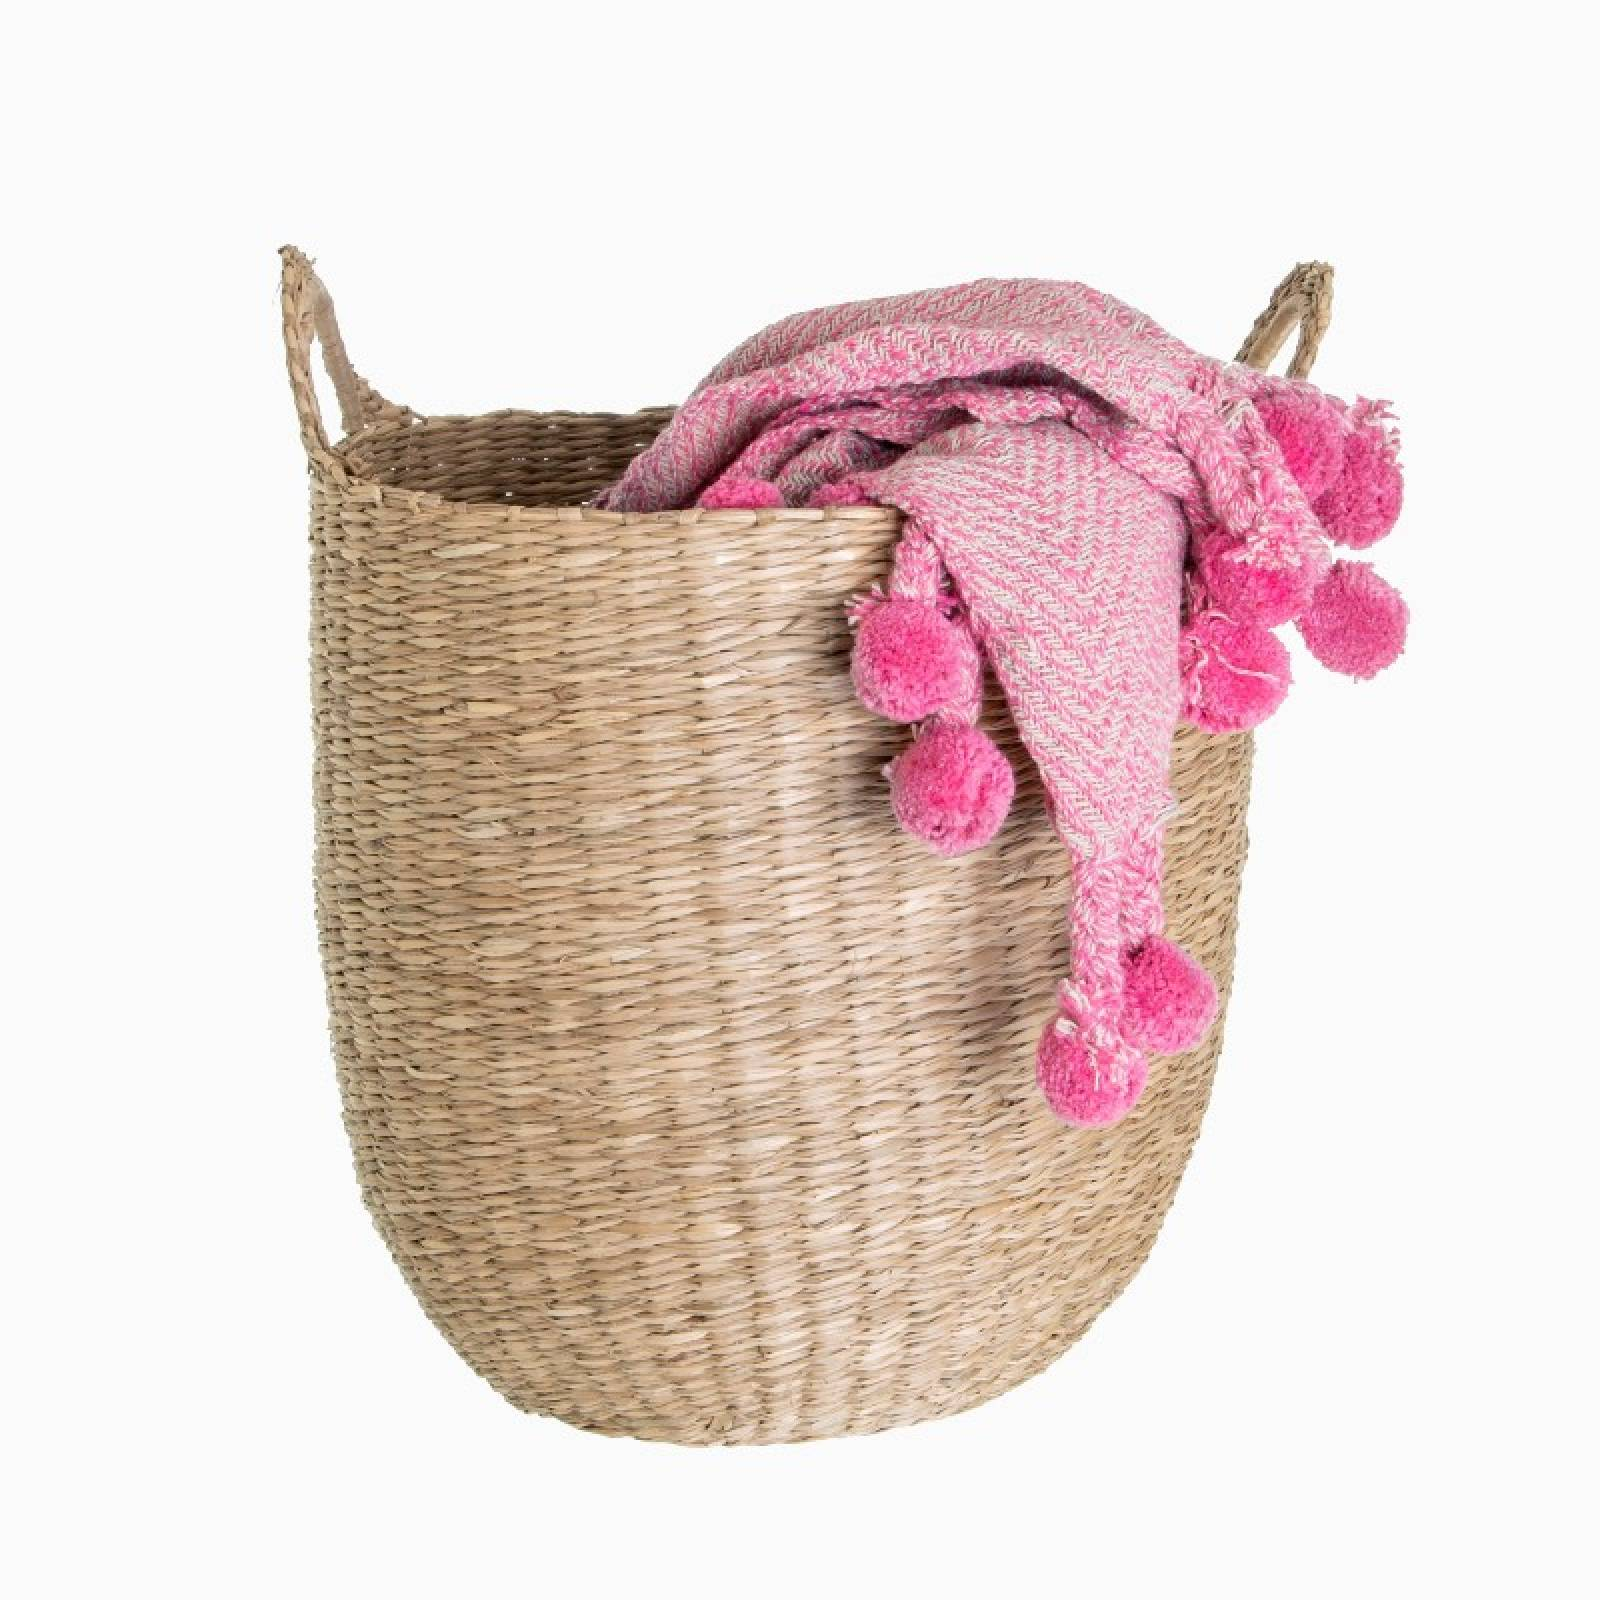 Rounded Woven Seagrass Basket With Handles H:37.5cm thumbnails